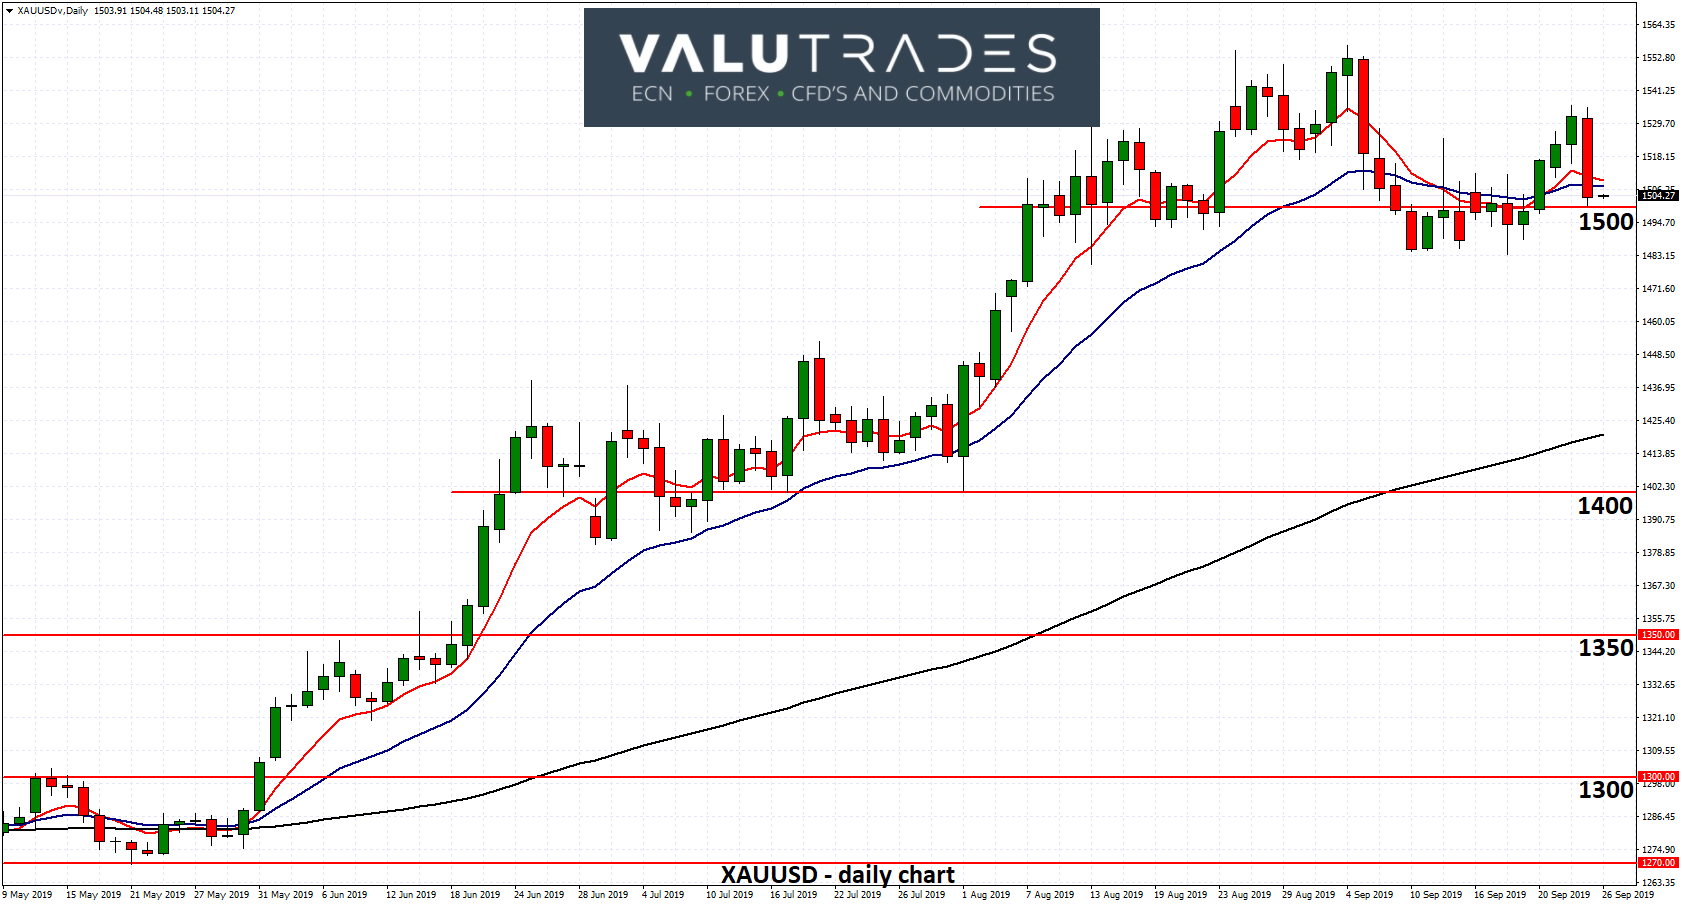 XAUUSD - Remains Well Supported at $1500 as IMF Warns on Trade Wars